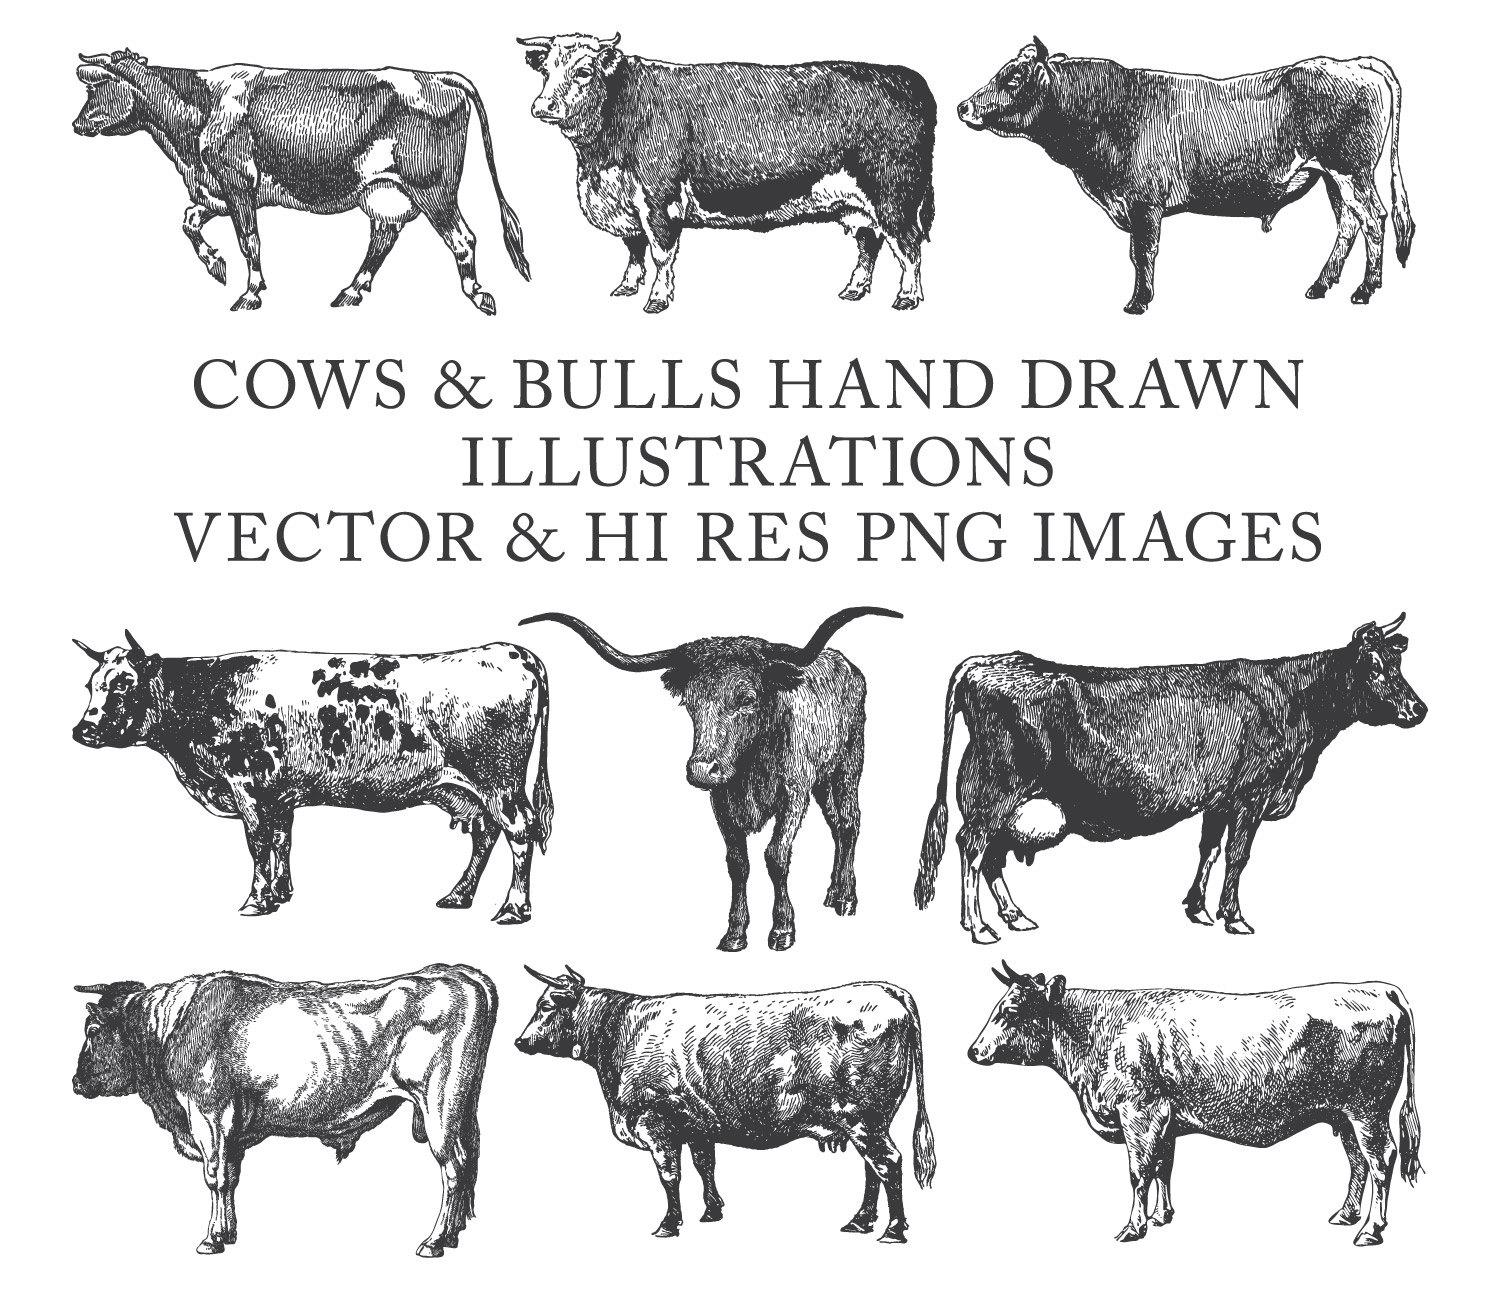 Drawn bulls spain bull Cow Engraving Clipart is file